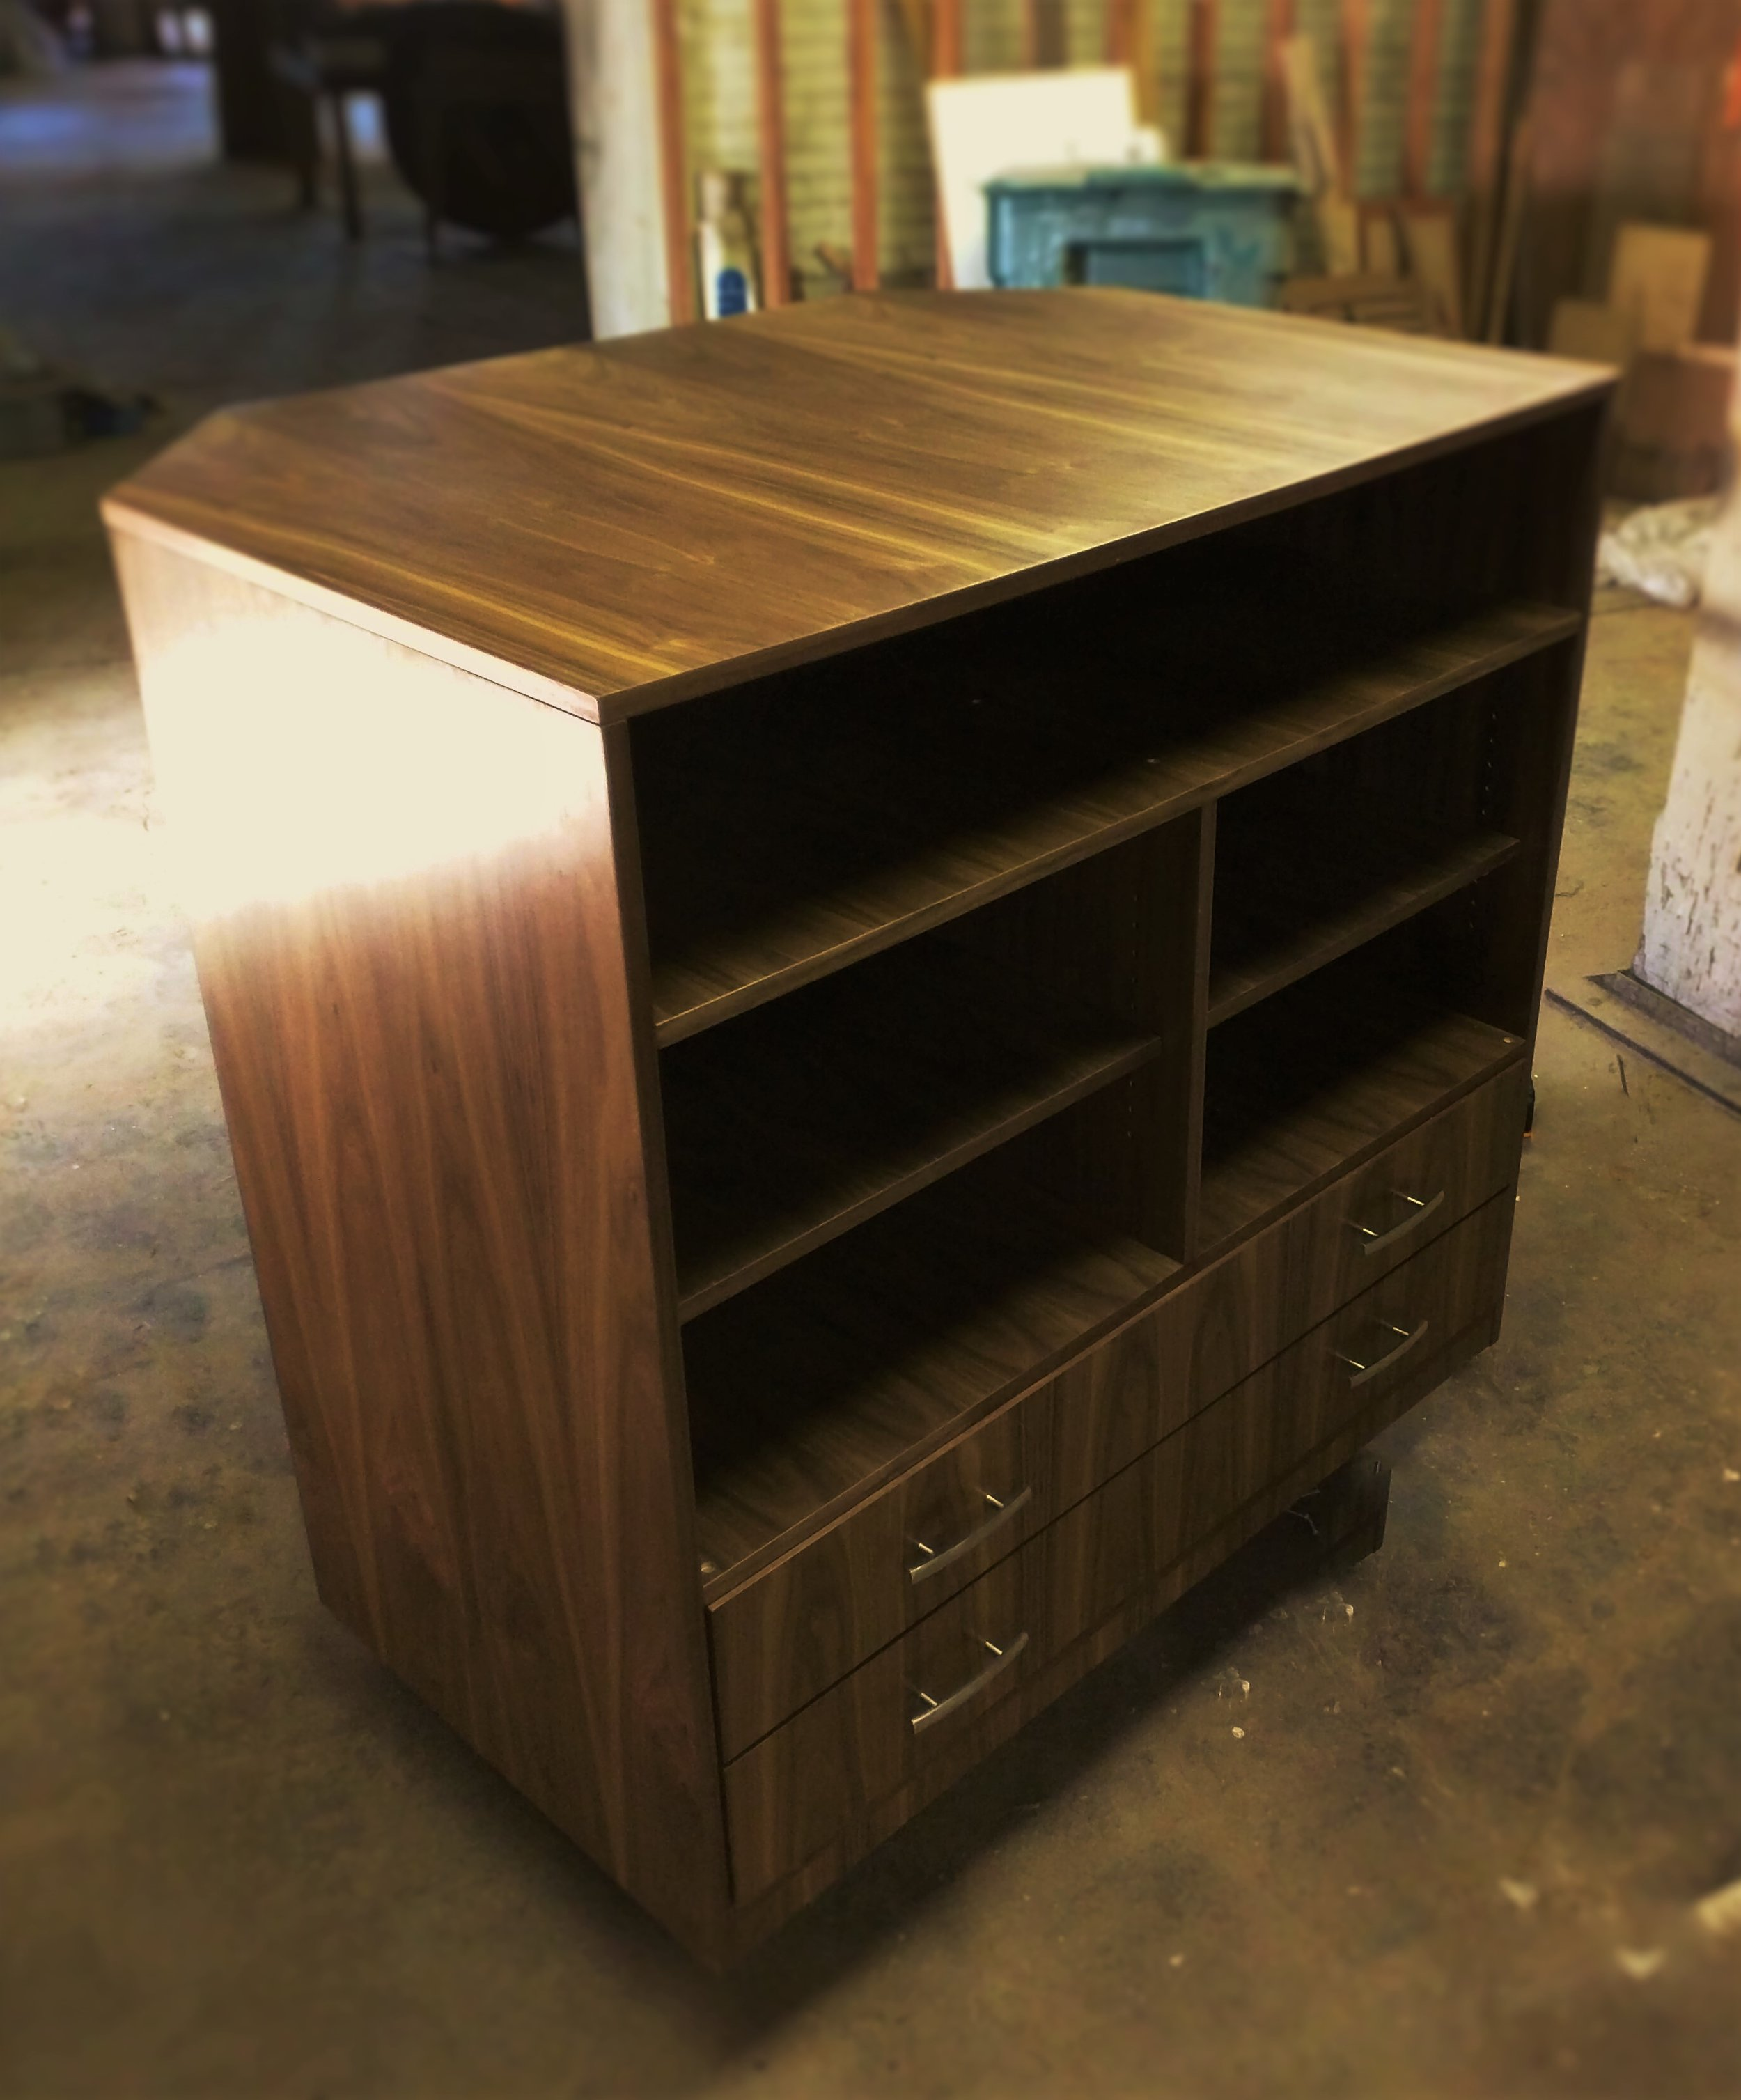 Floating Media Center    Starting at $2,950     Shown in Walnut